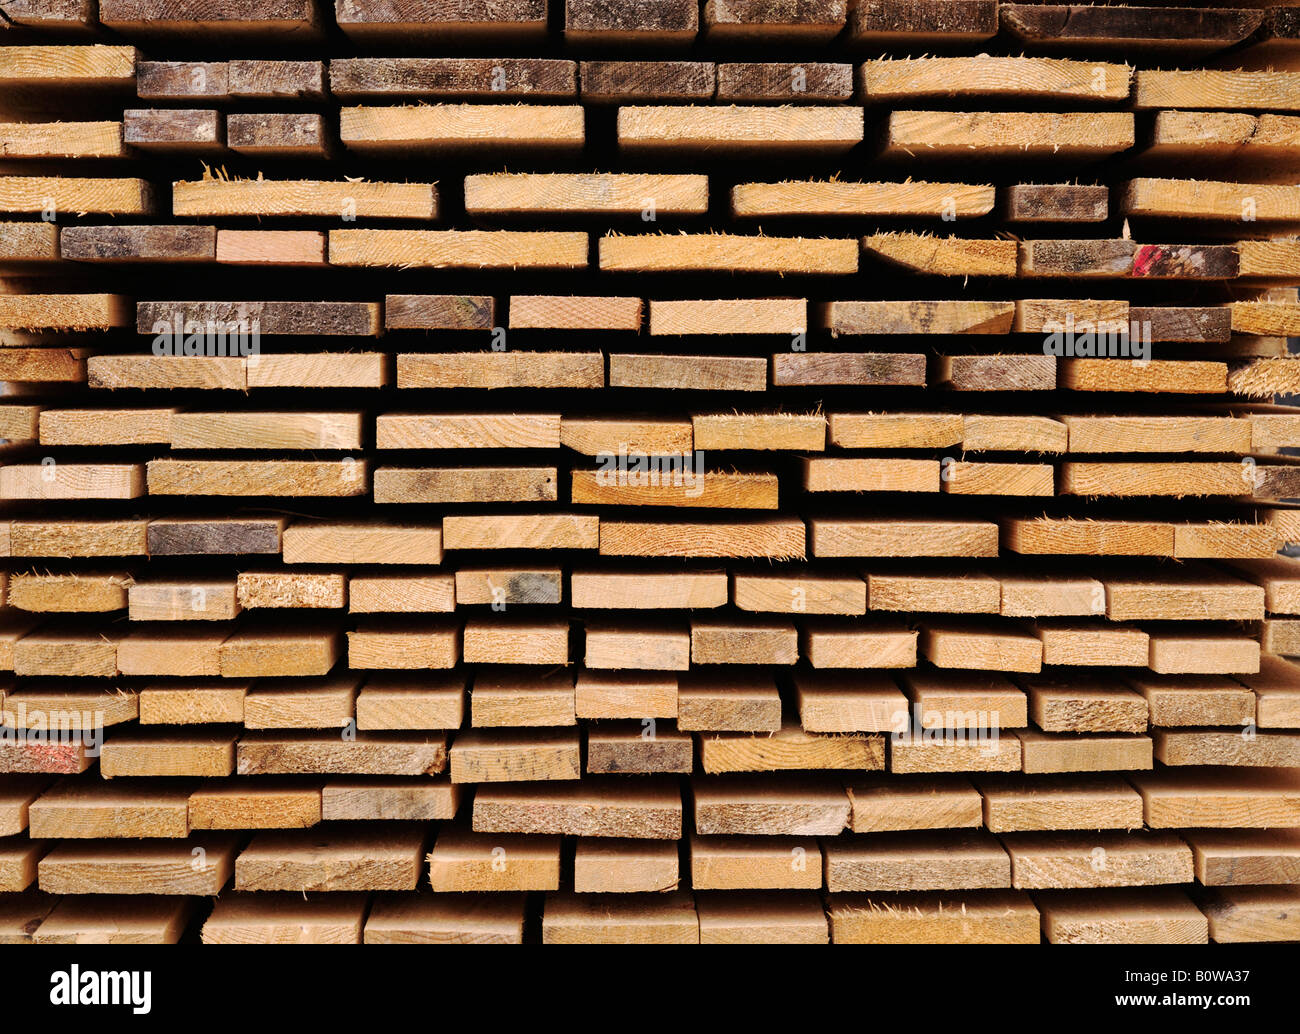 Stacked wooden boards, building material, view of the ends, image-filling - Stock Image